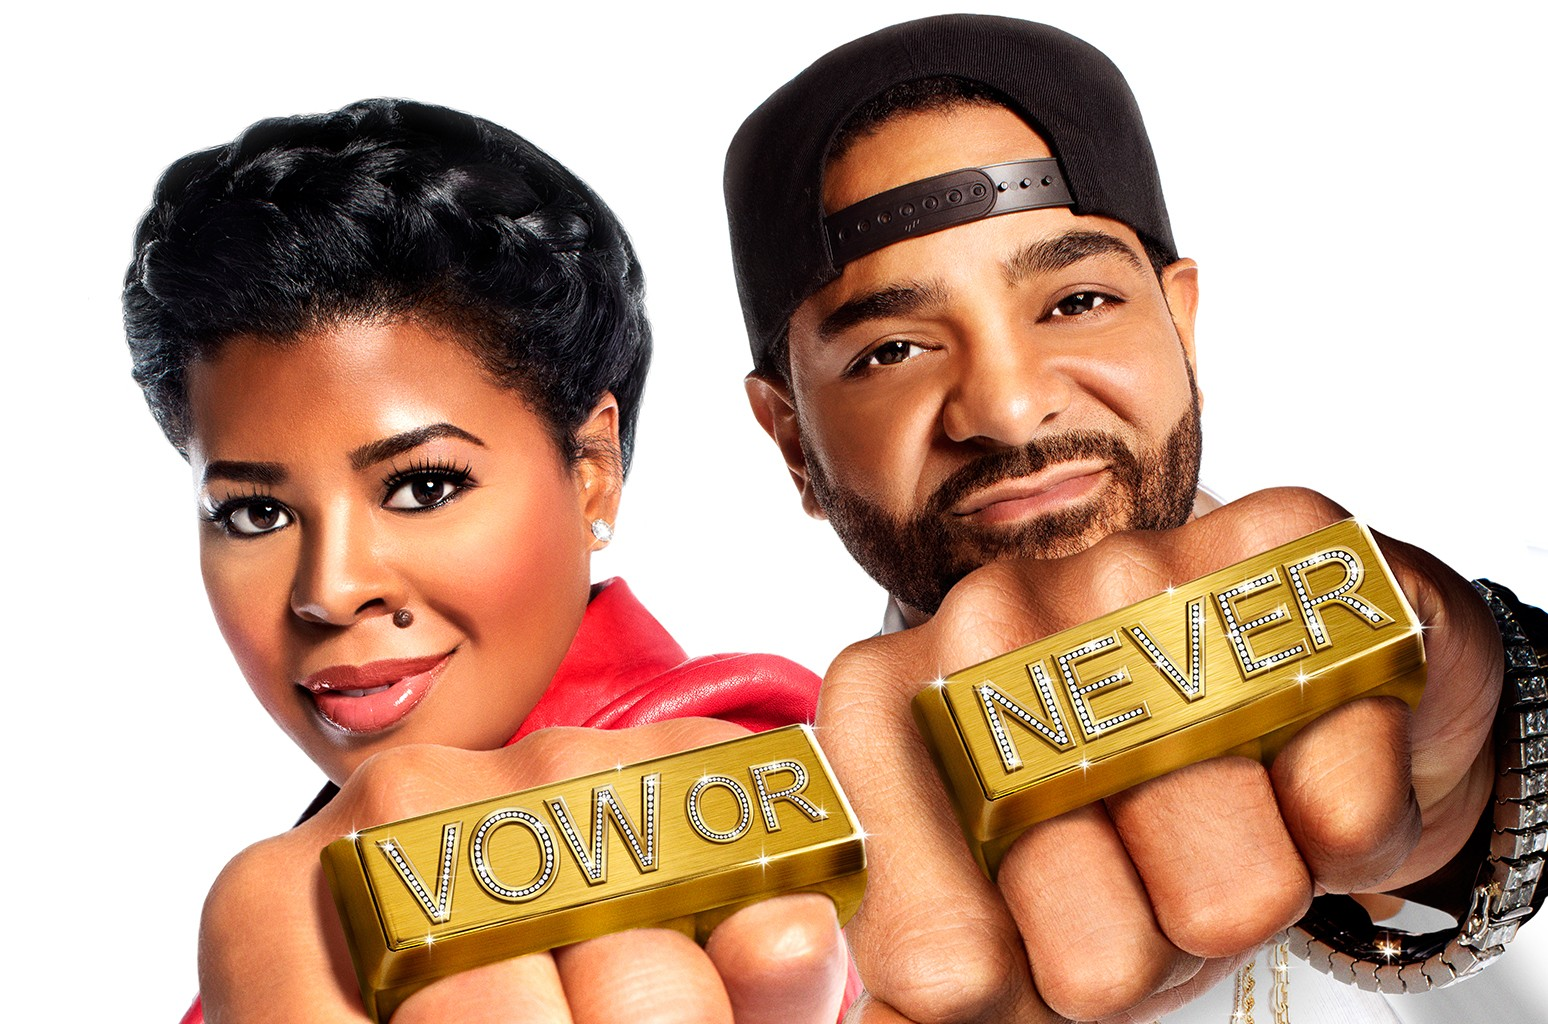 Chrissy Lampkin and Jim Jones in Vow or Never.